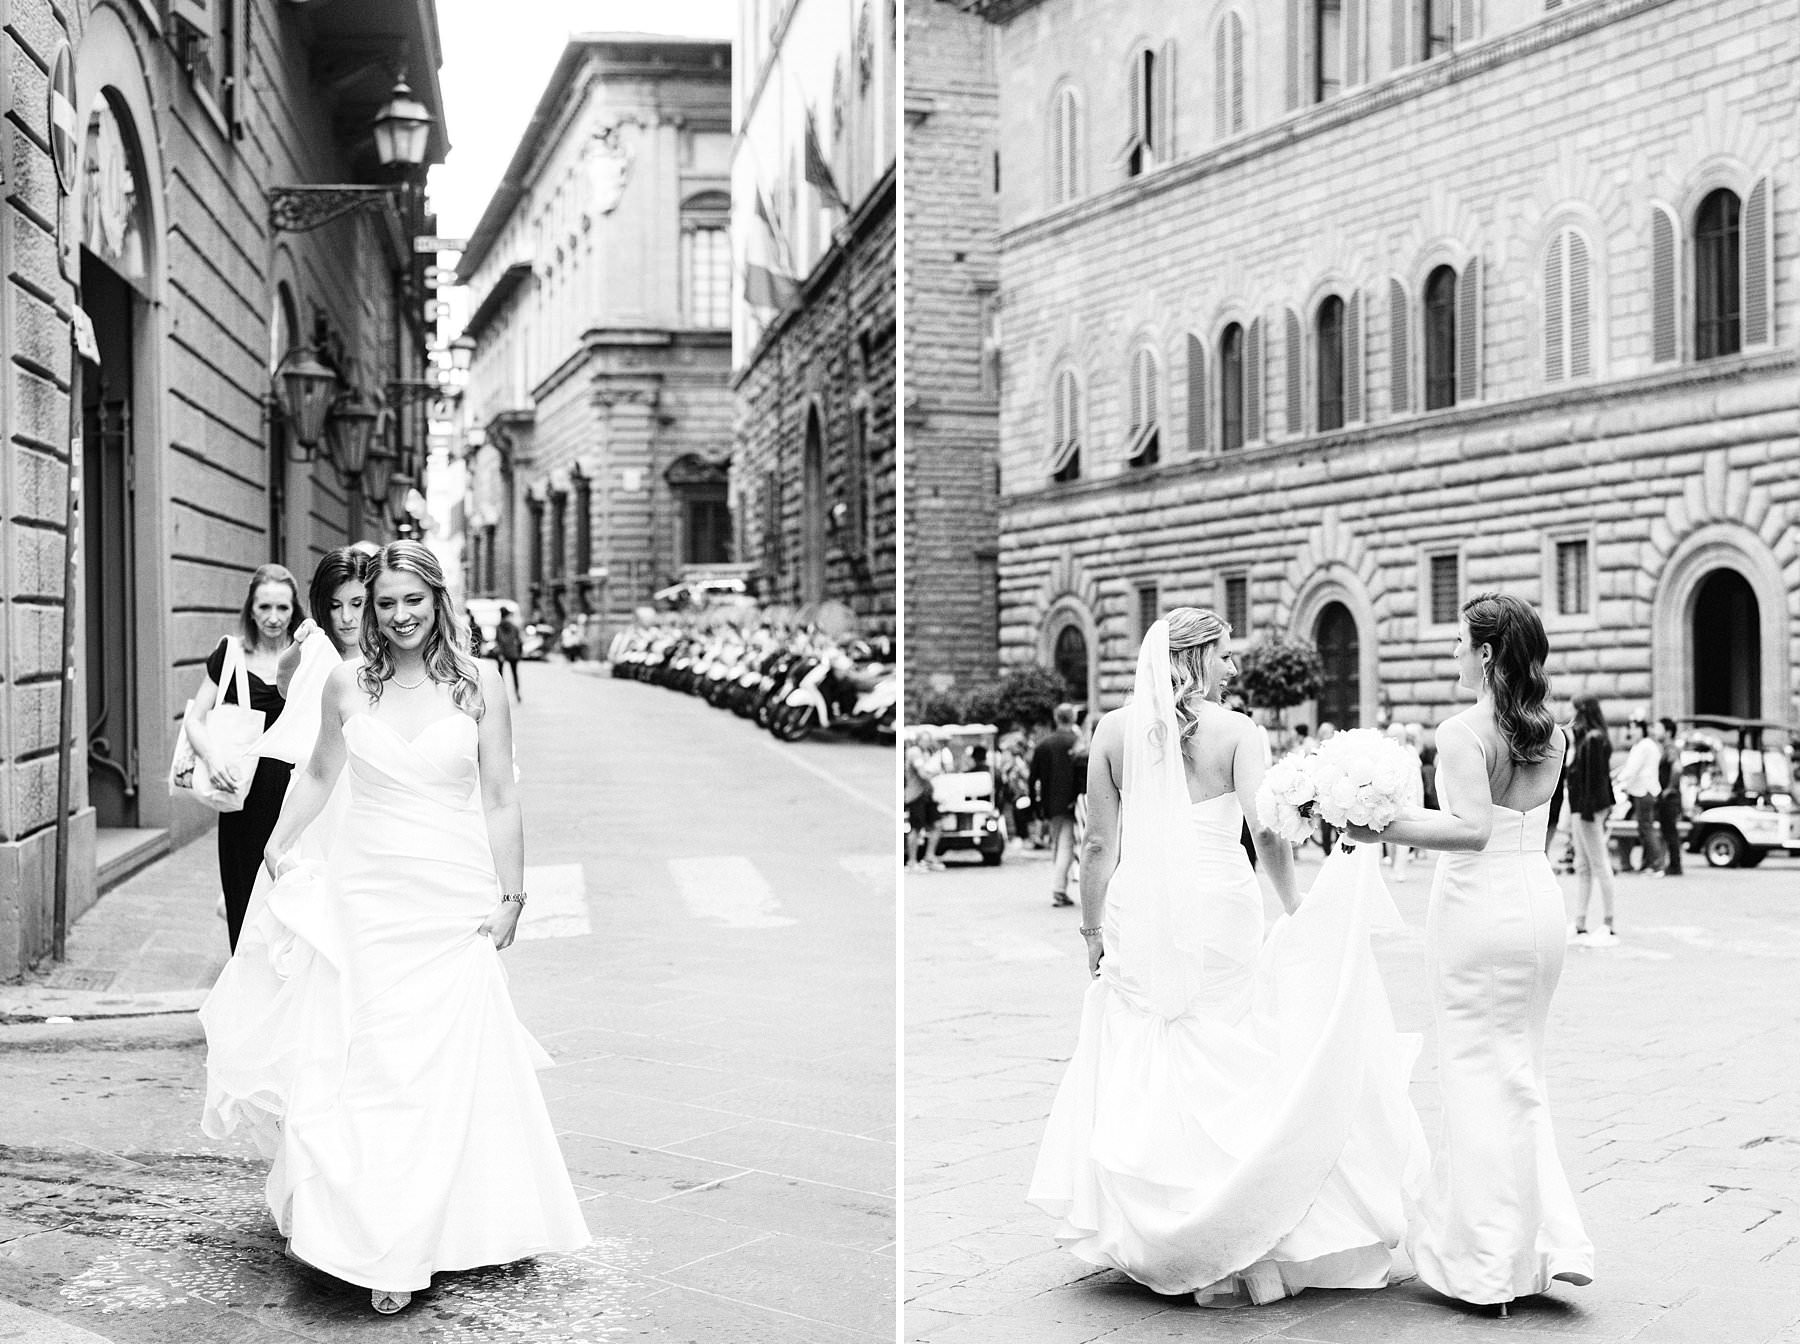 Intimate exquisite wedding in the heart of Florence, Italy. This beautiful American bride opted for the most elegant and exclusive venues for their exquisite wedding: Grand Hotel Cavour, where they got ready, and Palazzo Gondi